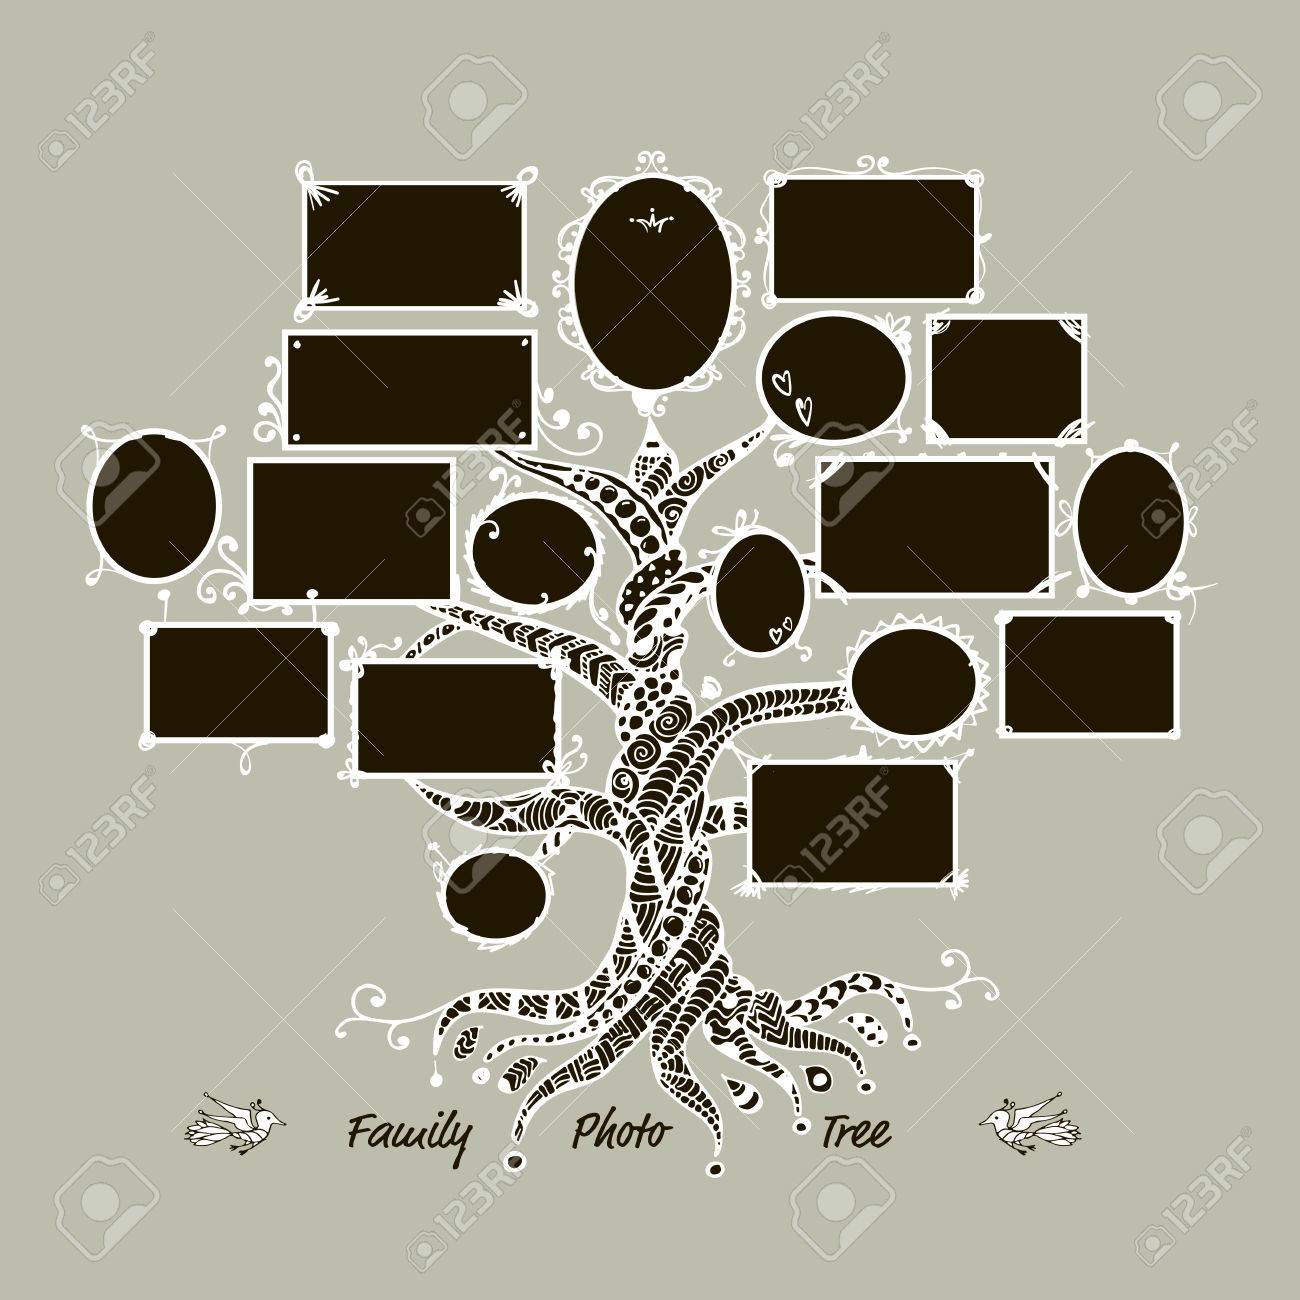 Family Tree Template With Picture Frames  Insert Your Photos     Family tree template with picture frames  Insert your photos  Vector  illustration Stock Vector